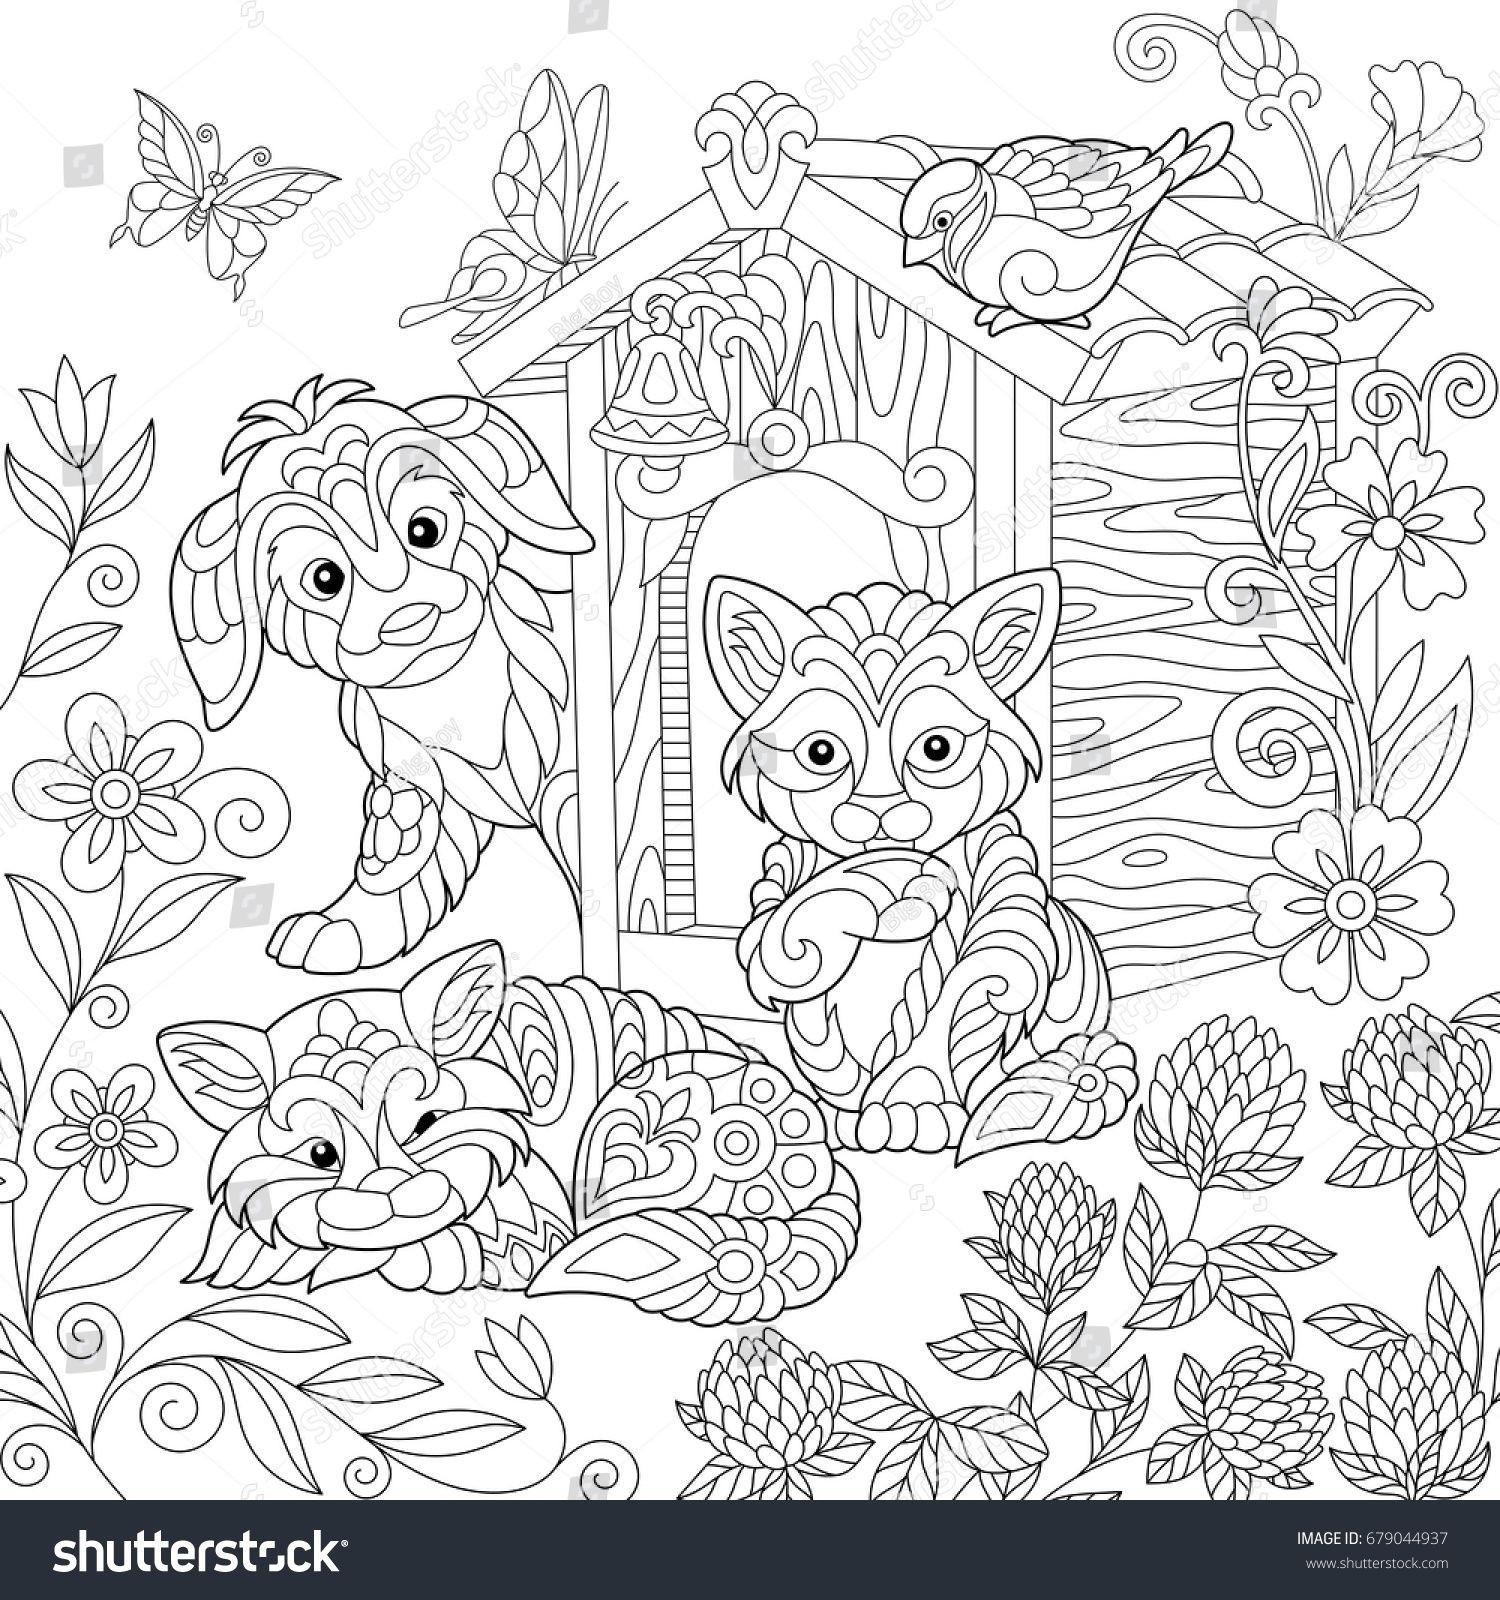 Free Printable Aboriginal Colouring Pages Beautiful Printable - Free Printable Aboriginal Colouring Pages